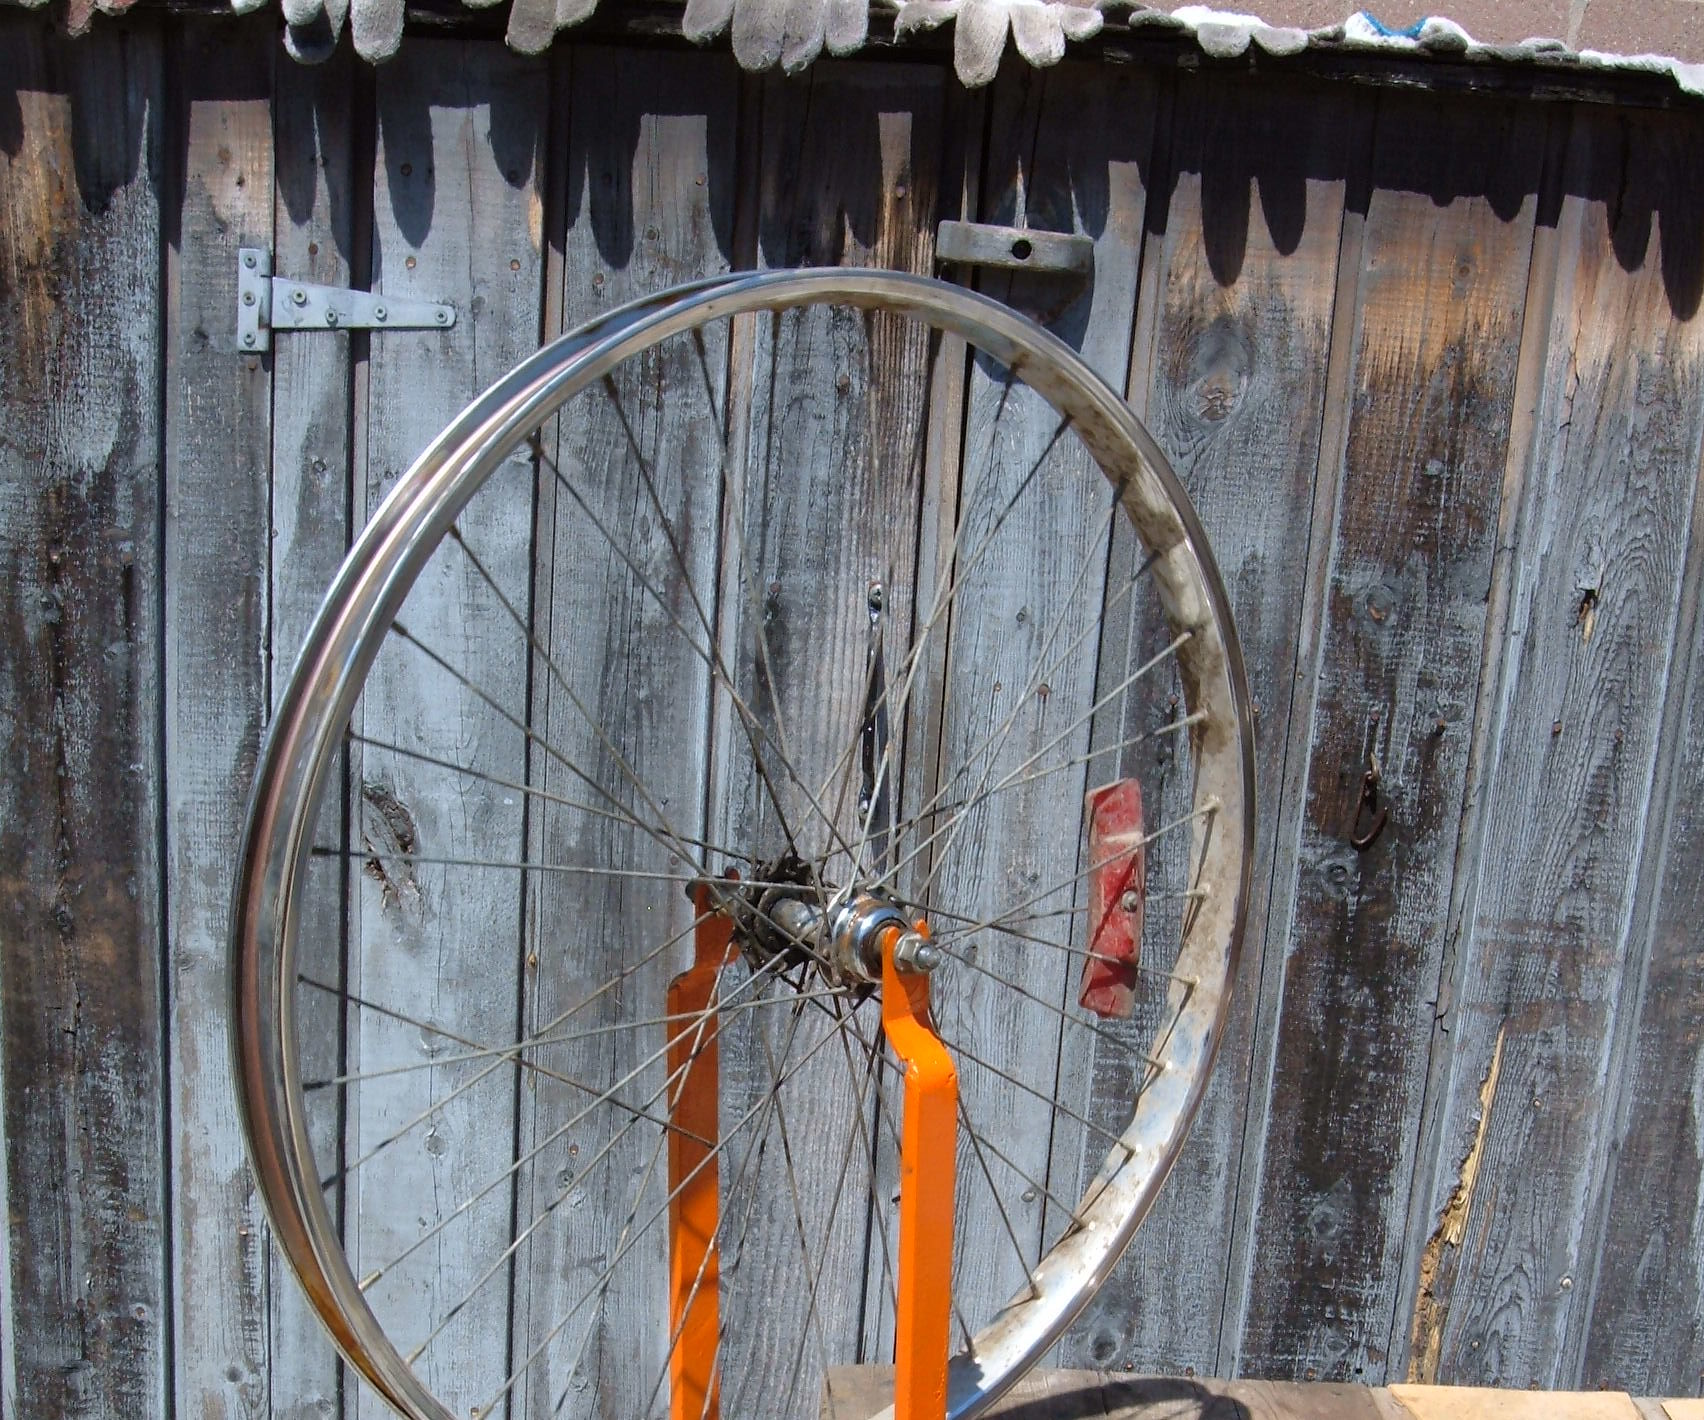 Simple DIY Bicycle Wheel Truing Stand